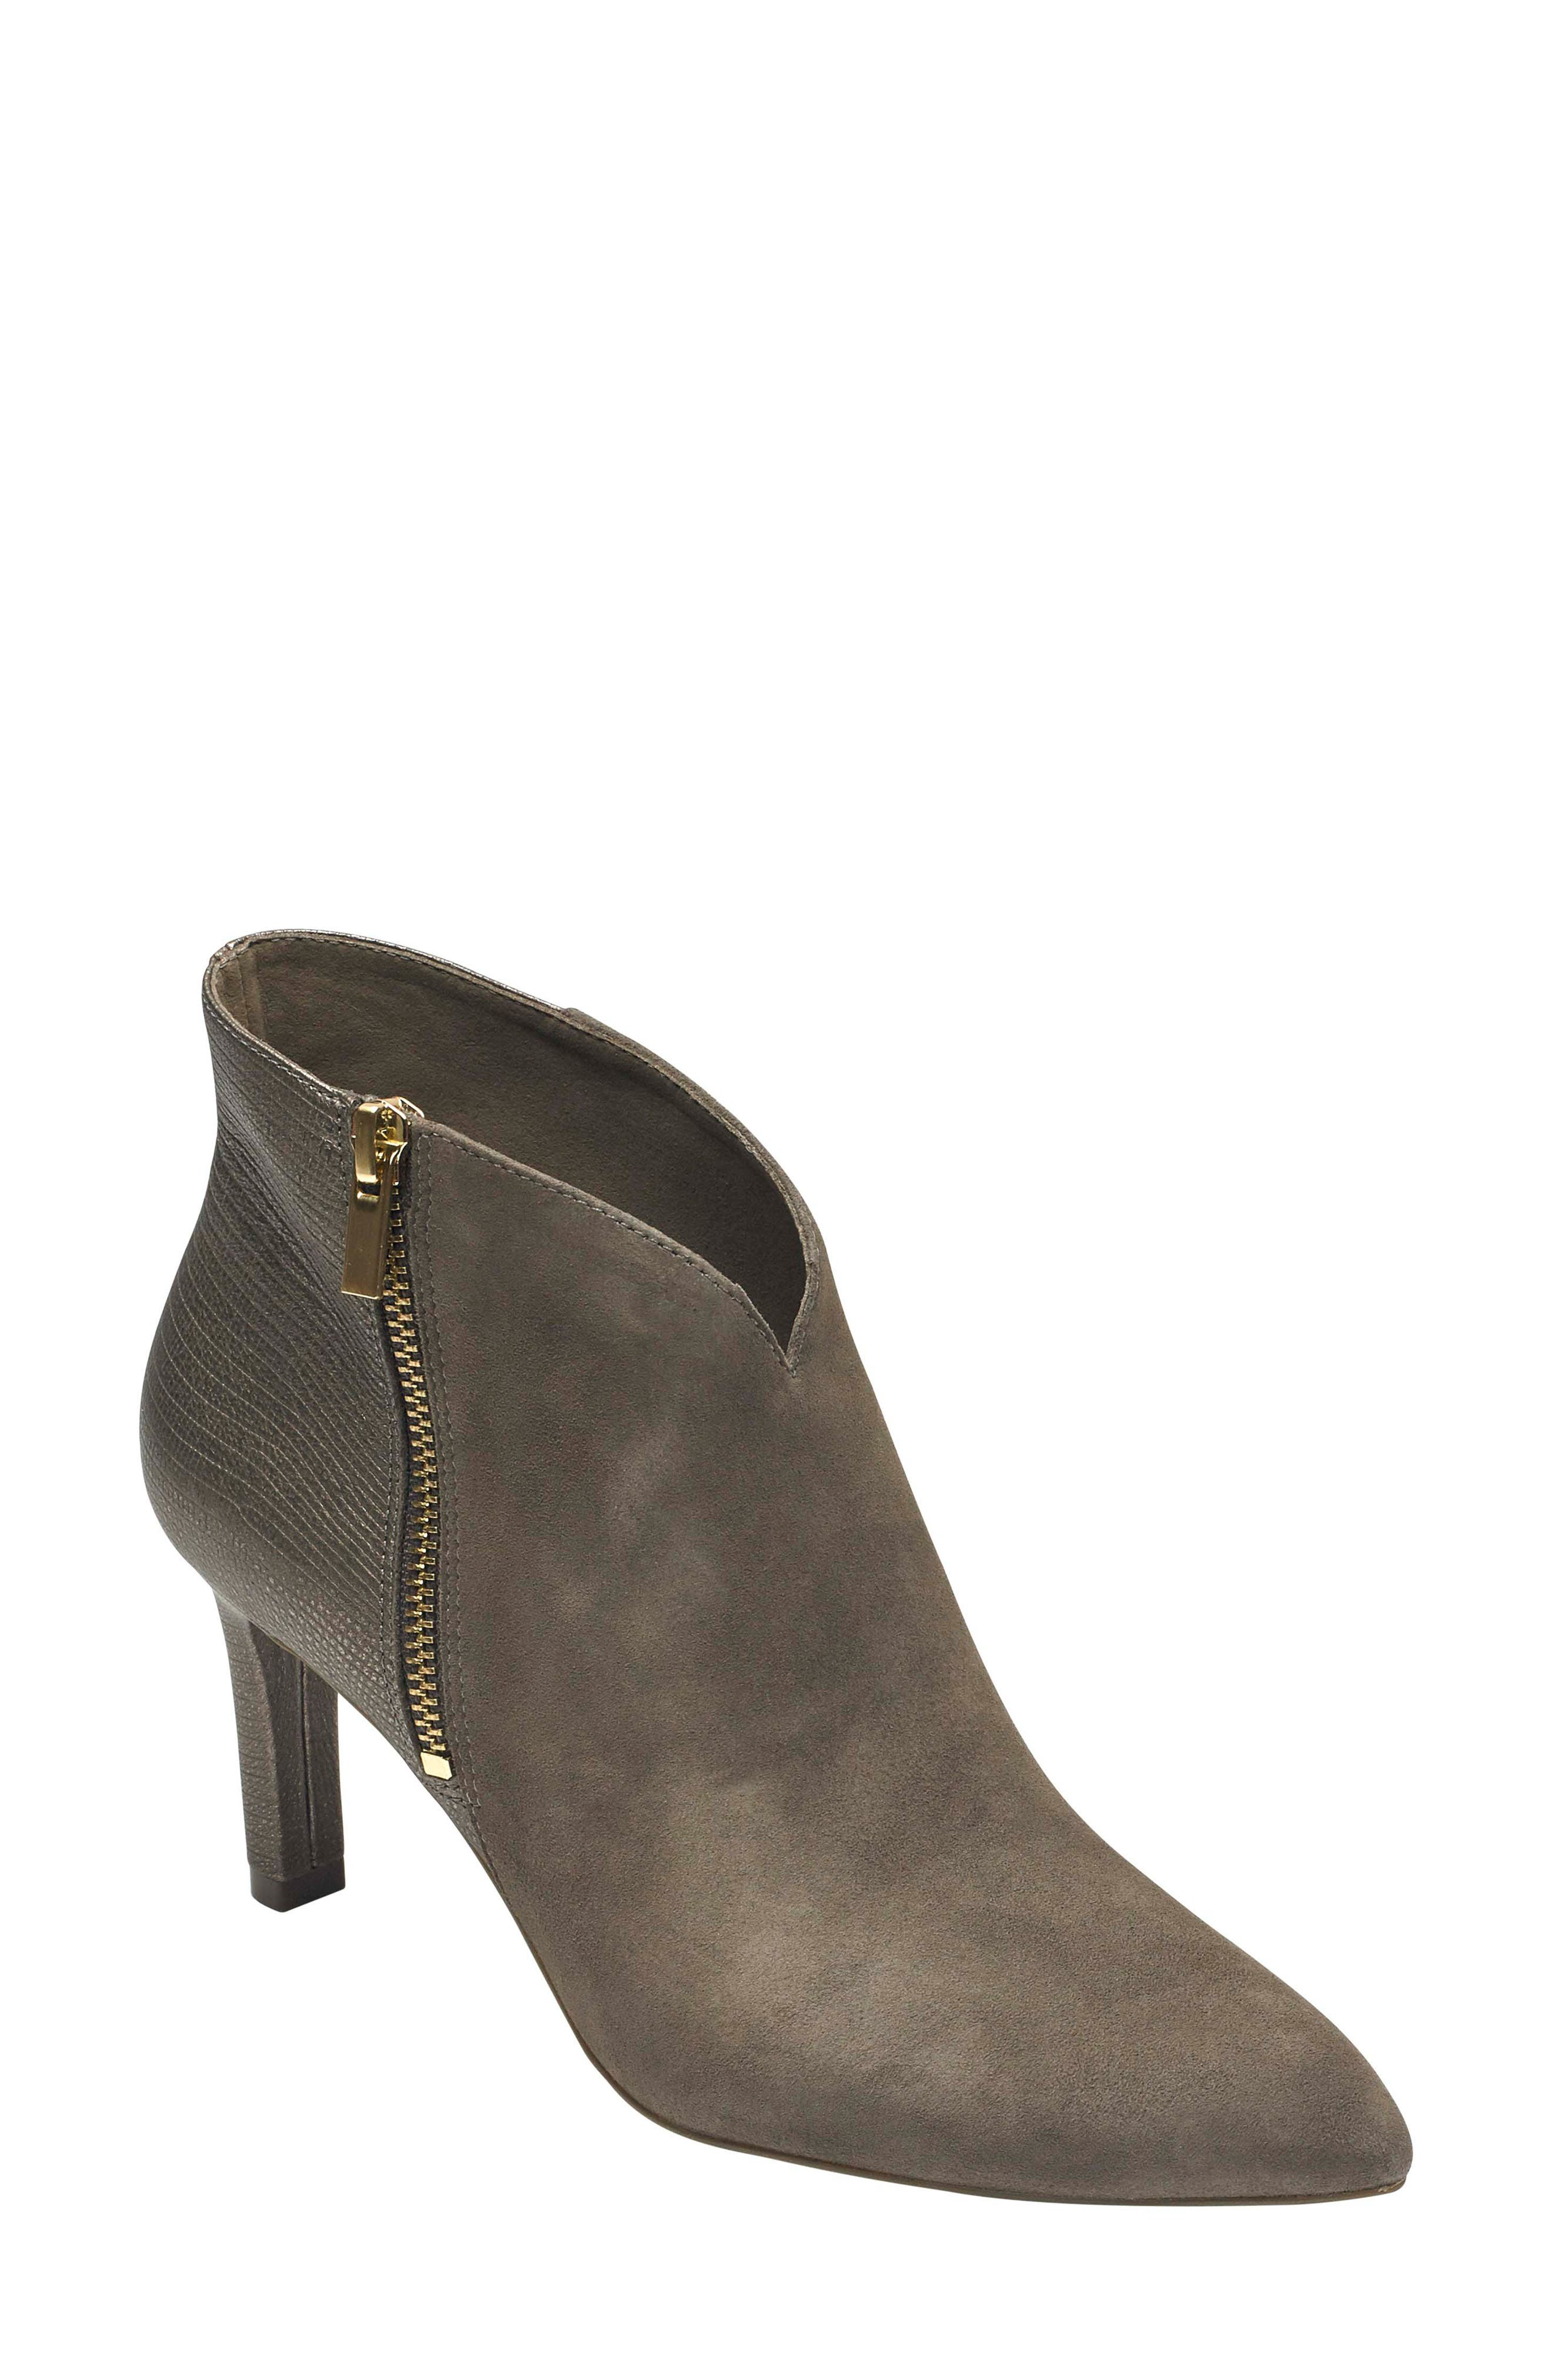 Rockport Total Motion Valerie Bootie W - Grey